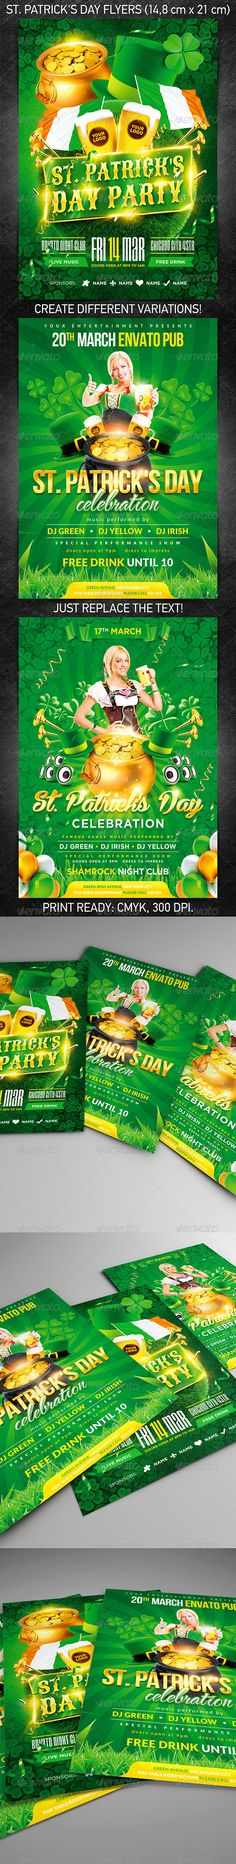 March Game Basketball Flyer Template Flyer template, Psd - basketball flyer example